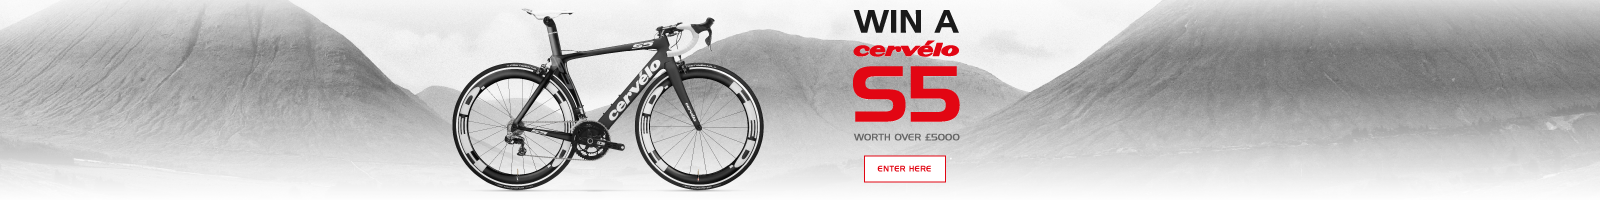 Enter to win a Cervelo S5 bike